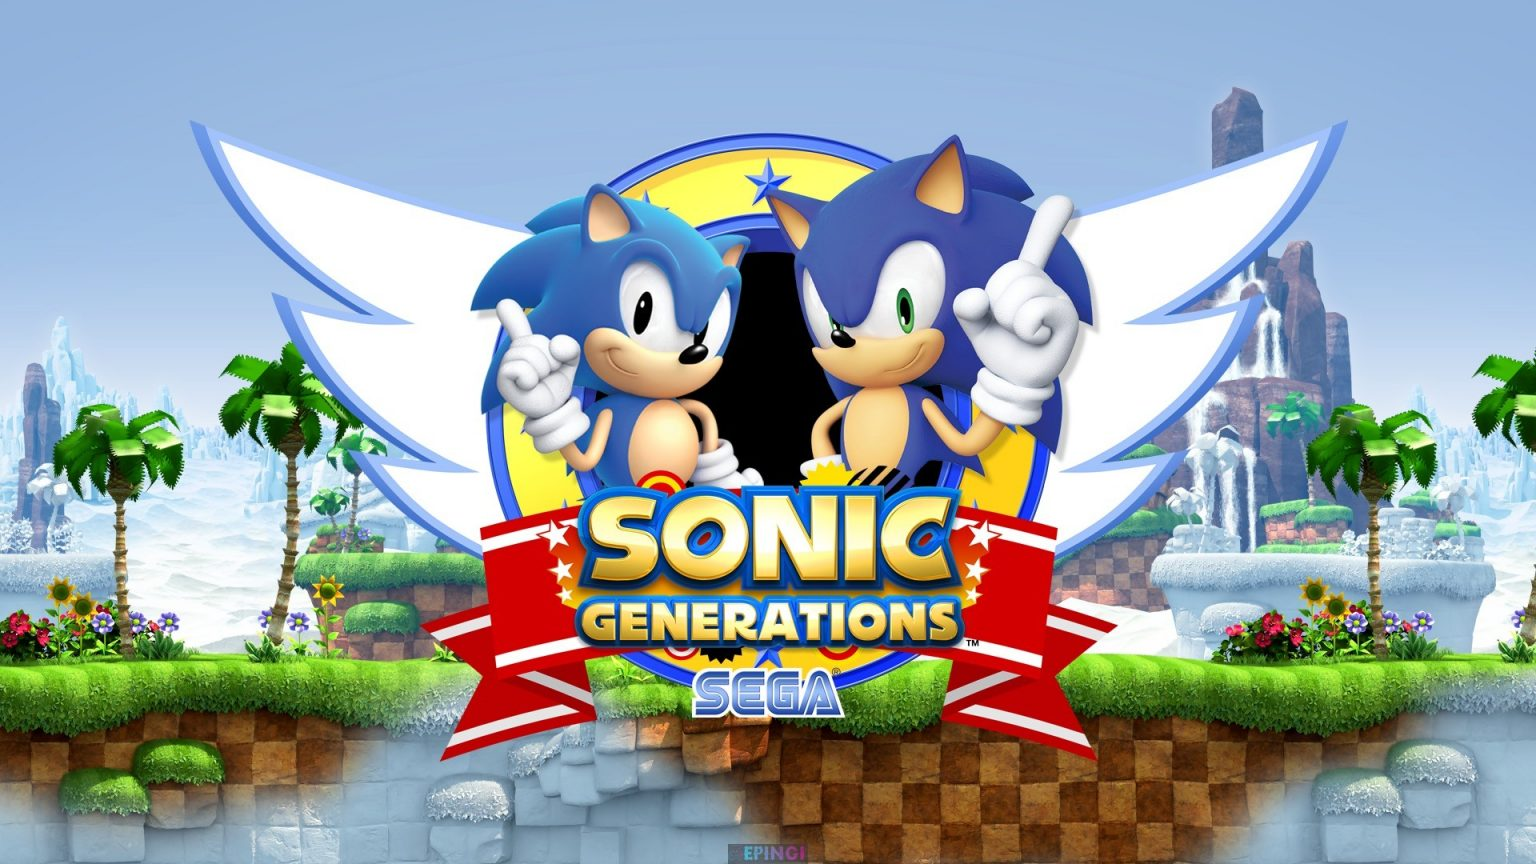 Sonic Generations Nintendo Switch iOS/APK Version Full Game Free Download